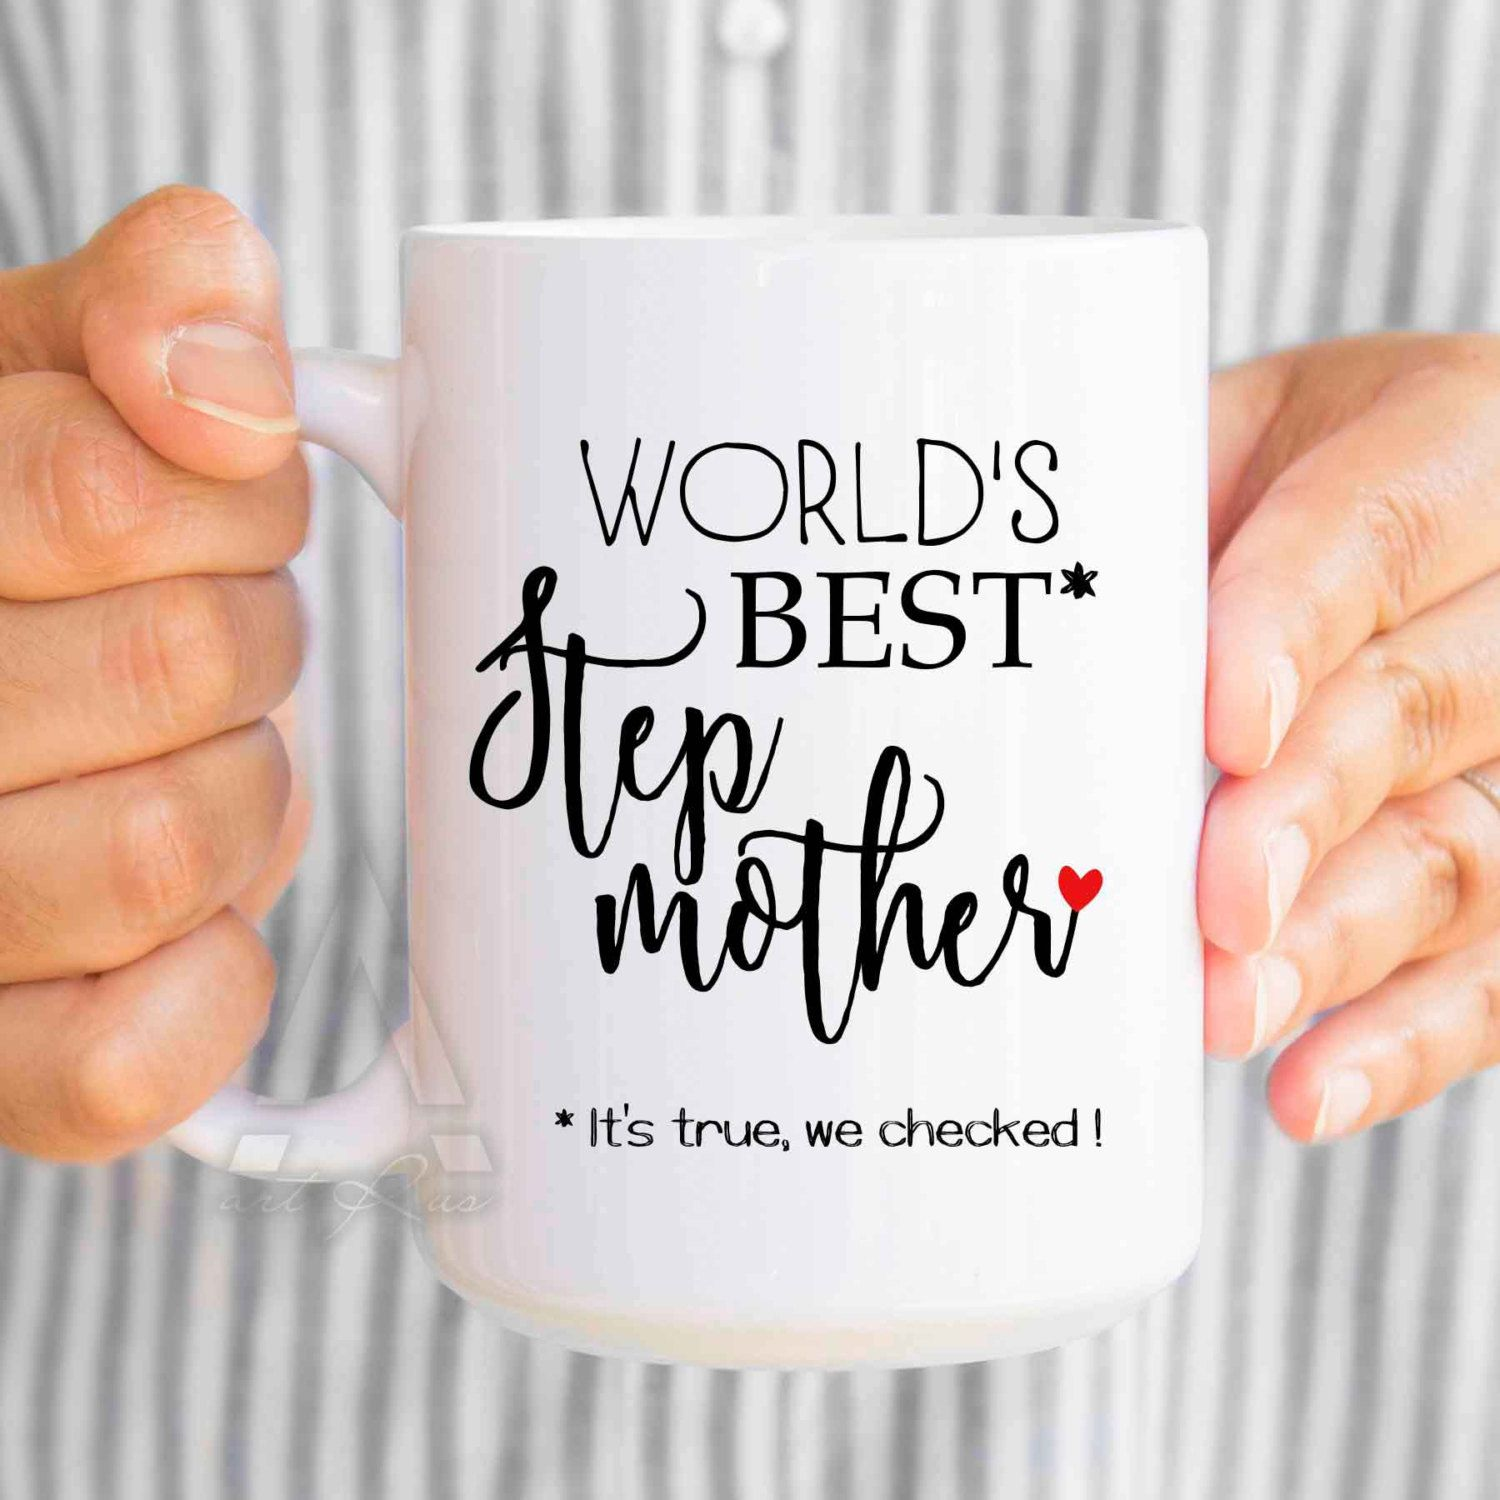 Best coffee mugs etsy - Funny Stepmom Birthday Gift World S Best Stepmother Coffee Mugs Christmas Gifts For